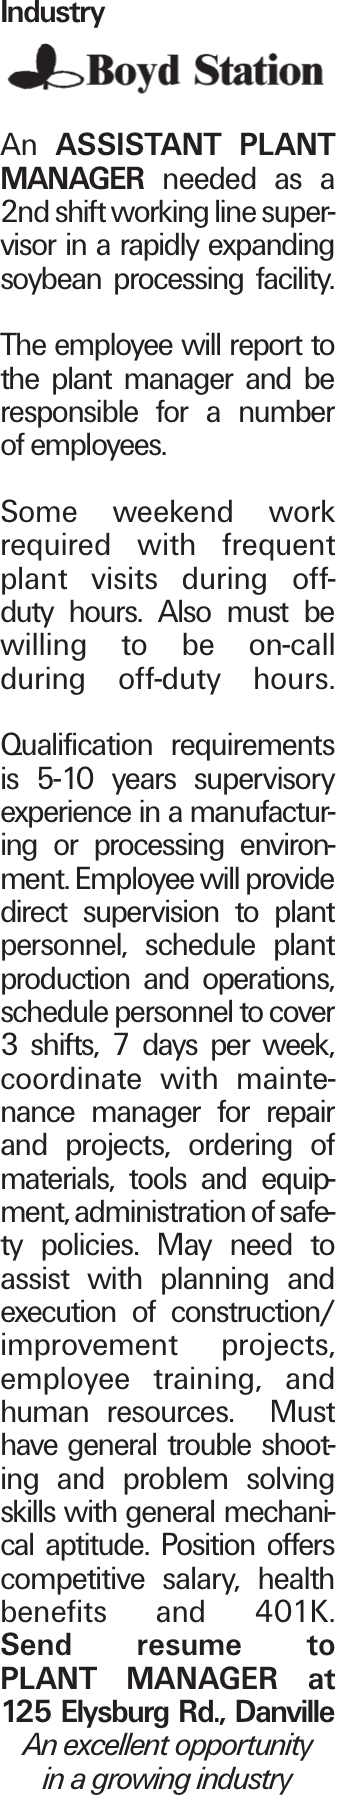 Industry An assistant plant manager needed as a 2nd shift working line supervisor in a rapidly expanding soybean processing facility. The employee will report to the plant manager and be responsible for a number of employees. Some weekend work required with frequent plant visits during off- duty hours. Also must be willing to be on-call during off-duty hours. Qualification requirements is 5-10 years supervisory experience in a manufacturing or processing environment. Employee will provide direct supervision to plant personnel, schedule plant production and operations, schedule personnel to cover 3 shifts, 7 days per week, coordinate with maintenance manager for repair and projects, ordering of materials, tools and equipment, administration of safety policies. May need to assist with planning and execution of construction/ improvement projects, employee training, and human resources. Must have general trouble shooting and problem solving skills with general mechanical aptitude. Position offers competitive salary, health benefits and 401K. Send resume to Plant manager at 125 Elysburg Rd., Danville An excellent opportunity in a growing industry